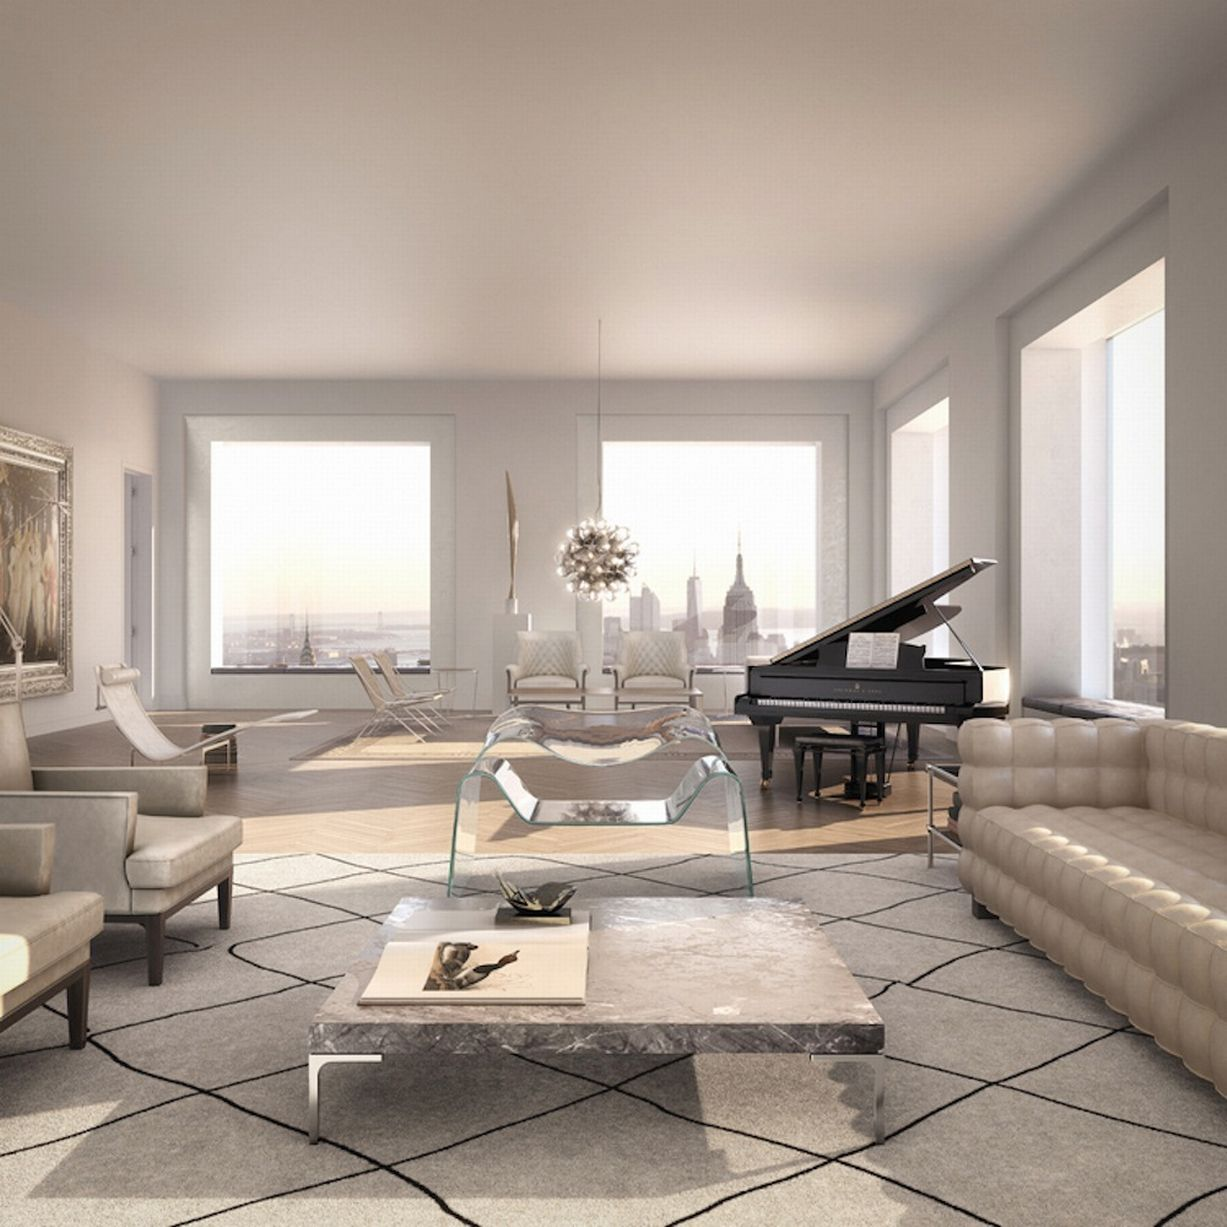 $95 Million Dollar Luxury Penthouse in New York-01